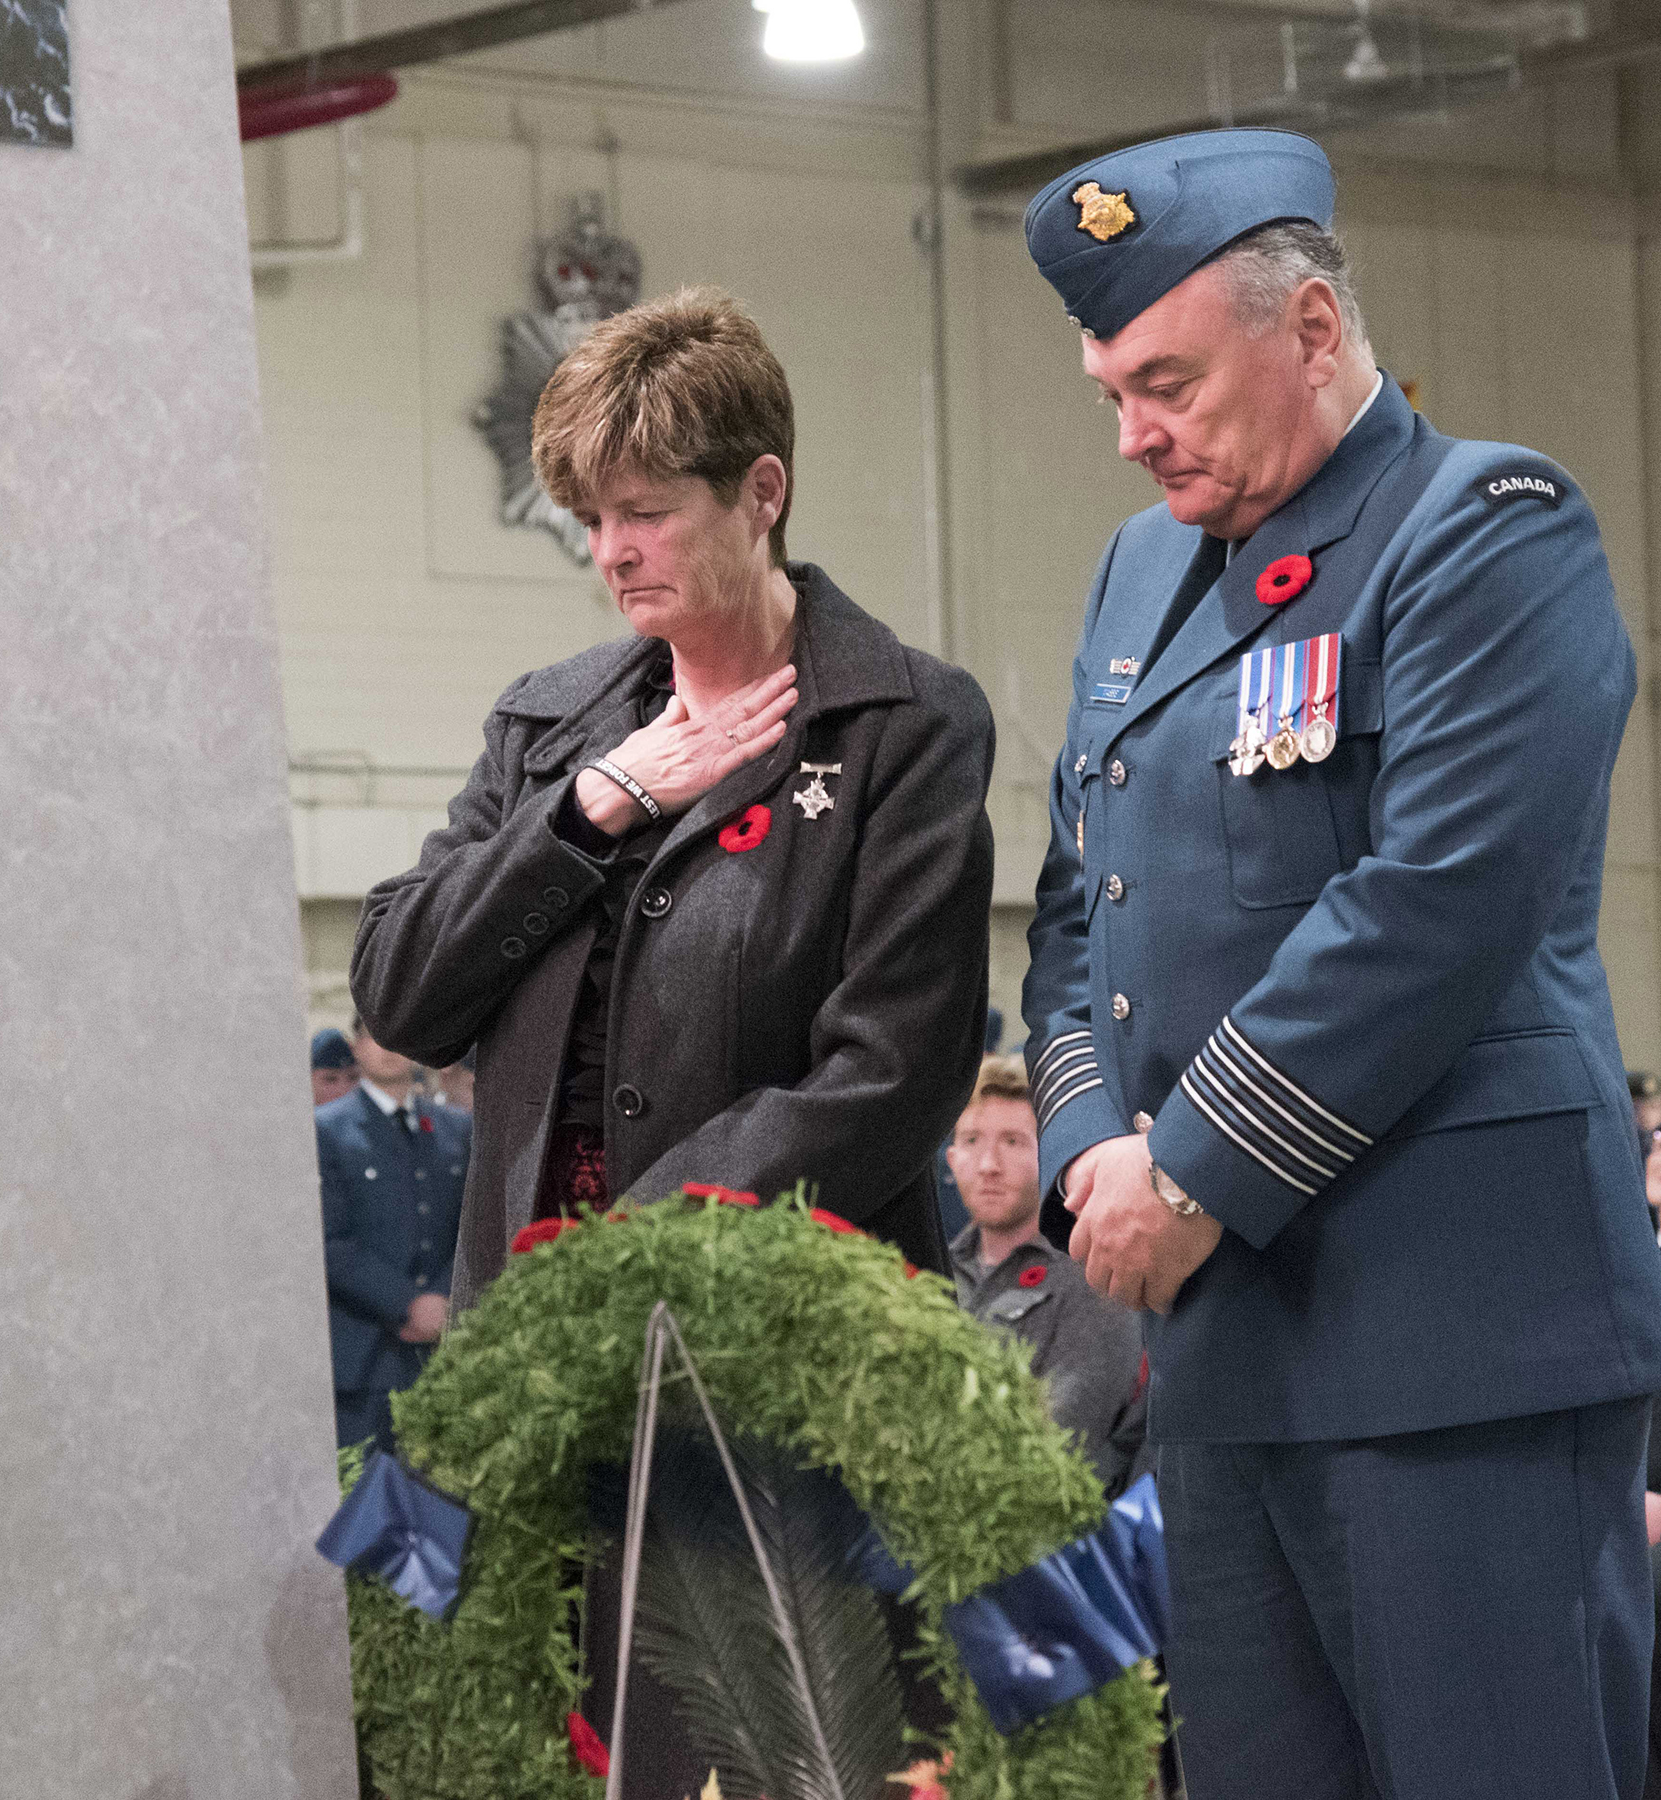 Mrs. Collier, 16 Wing/Canadian Forces Base Borden, Ontario, Silver Cross Mother, and Borden Honorary Colonel Jamie Massie lay a wreath during the Remembrance Day ceremony held in Borden on November 11, 2016. PHOTO: Sergeant Pierre Thériault